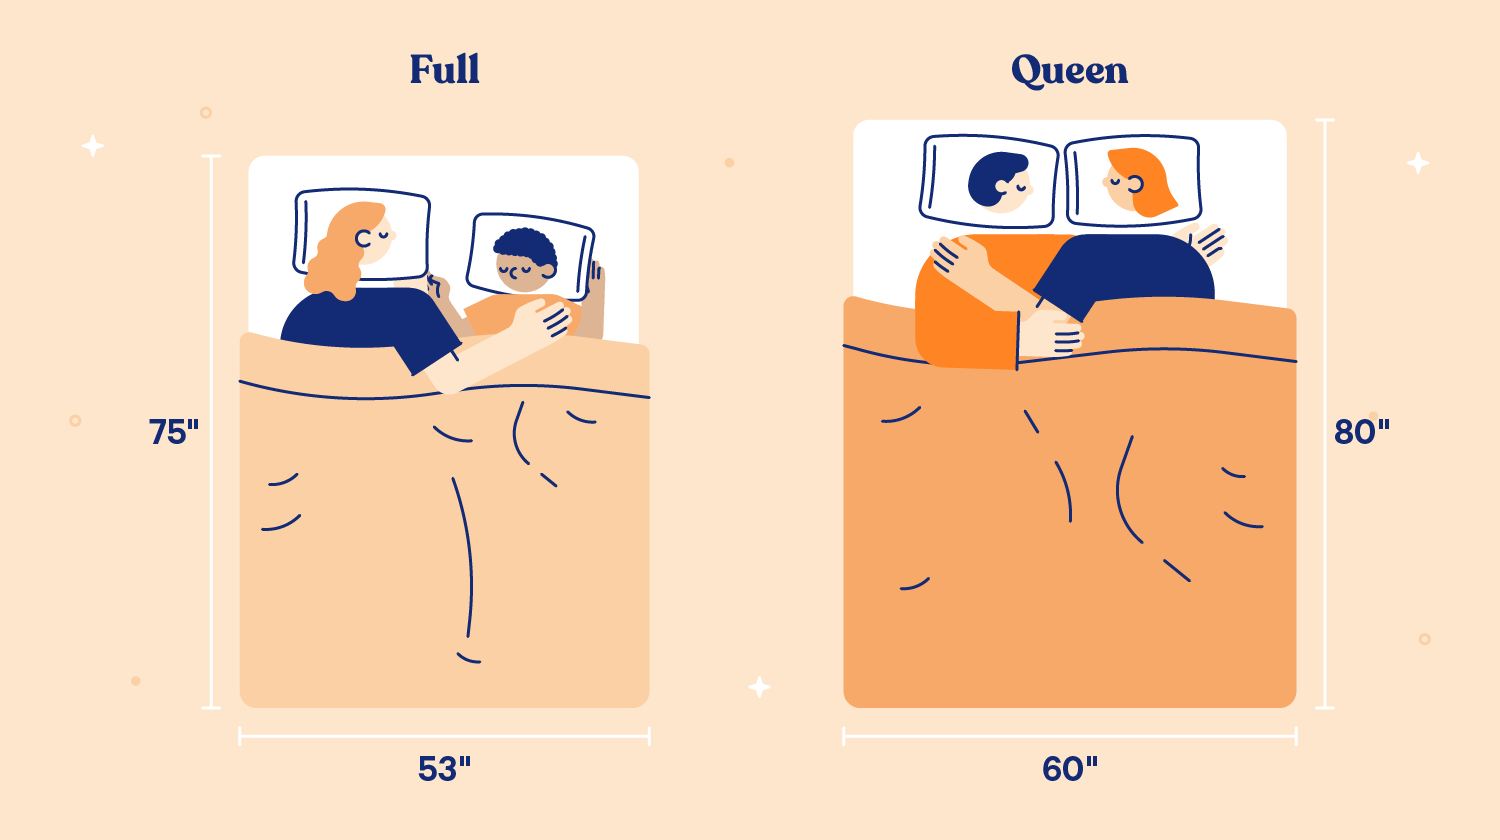 A couple sleep on a queen-sized mattress while cuddling and slightly spaced apart while a couple ona  full-sized mattress cuddle and sleep closer together.